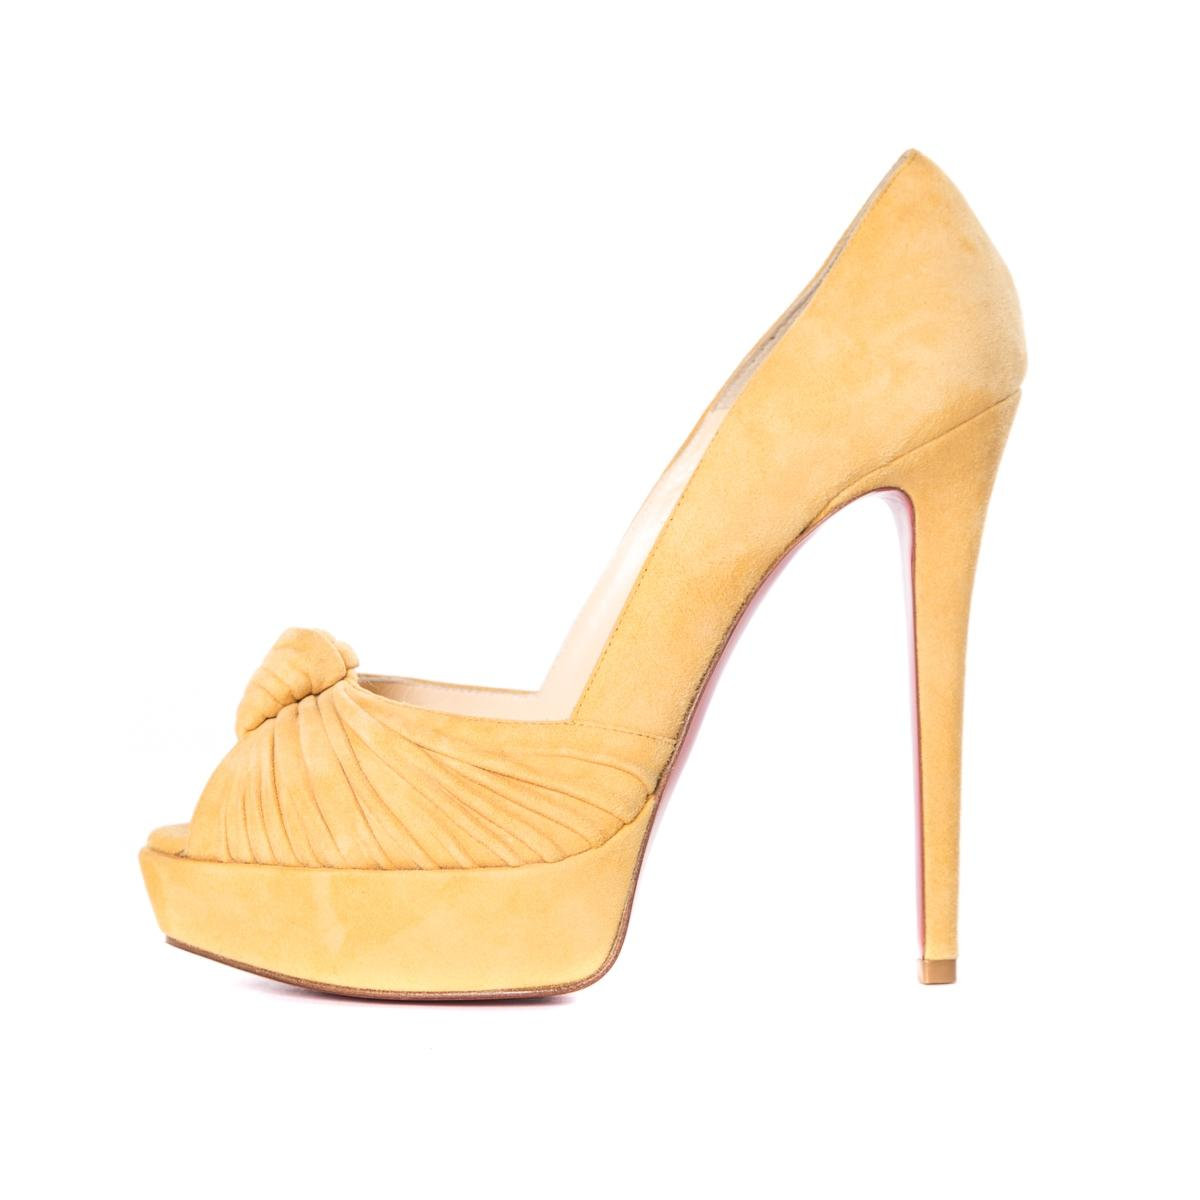 Christian Louboutin Suede Mustard Pumps Size US 7.5